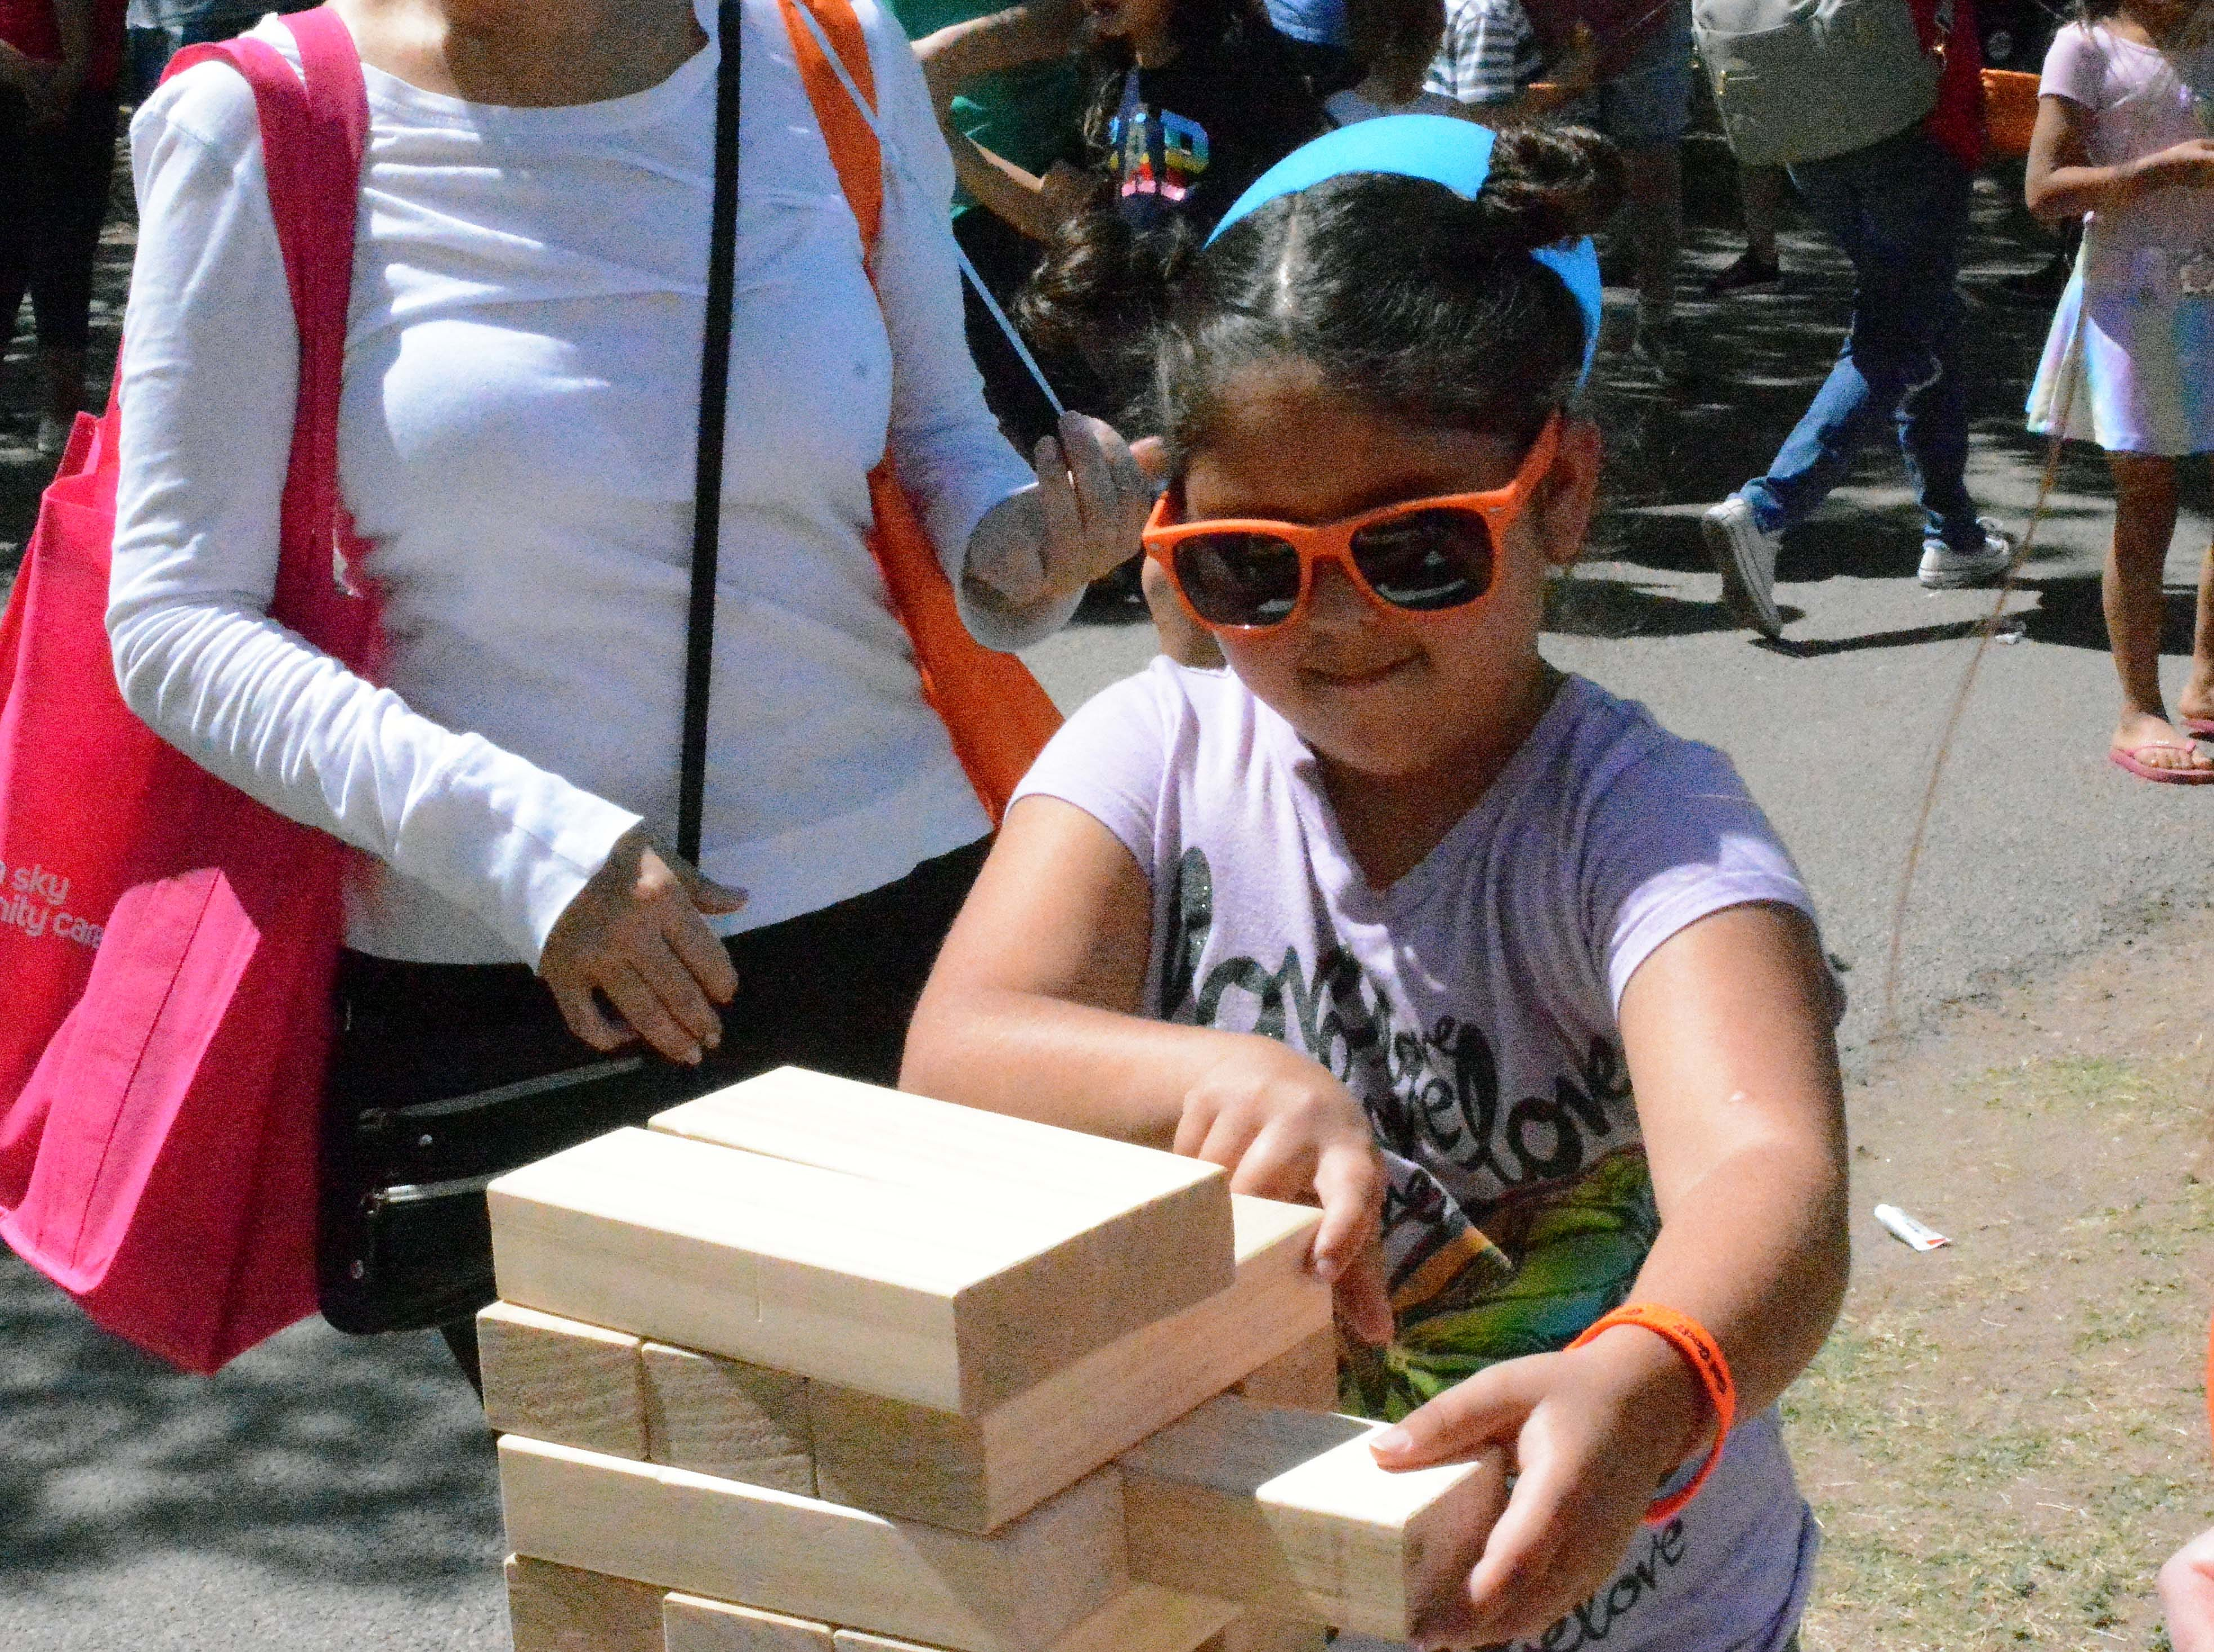 Adrienne Bustamante, 8, puts her skills to work in a game of Jenga during SpringFest at Young Park on Saturday, April 20, 2019.